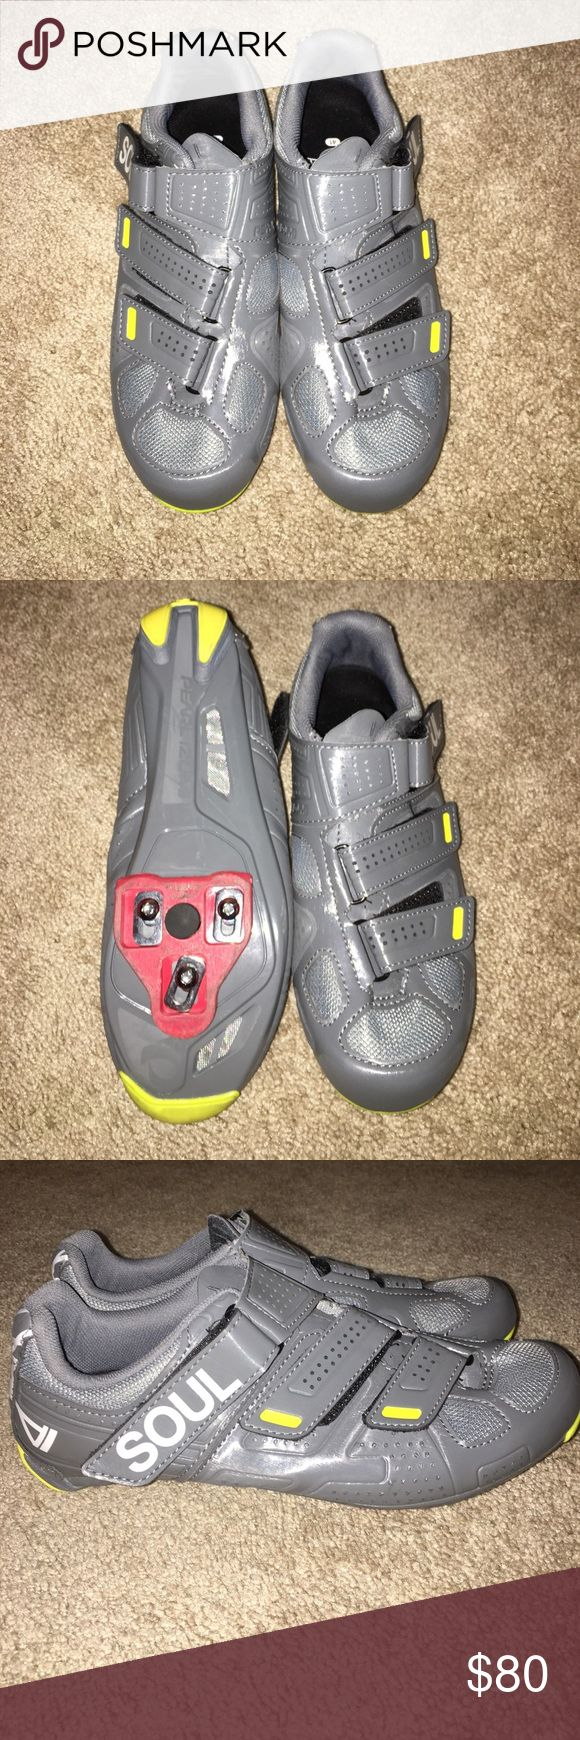 SOULCYCLE spin shoes Size 41 spin shoes with clips included! Would keep them but they are too big for my size 7.5-8 foot! Great condition- like new!!! soulcycle Shoes